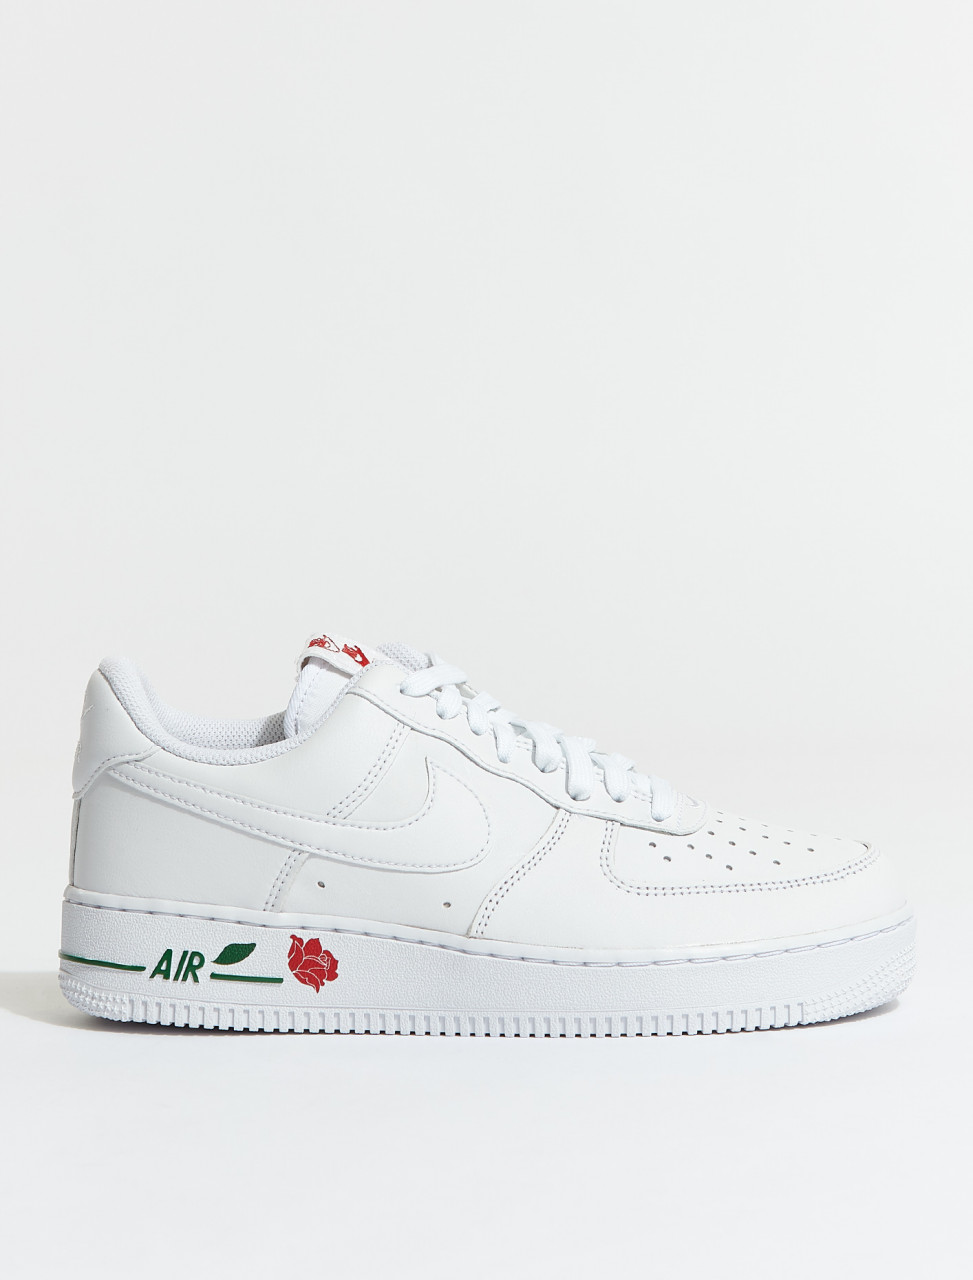 CU6312-100 NIKE AIRFORCE 1 07 LX WHITE UNIVERSE RED